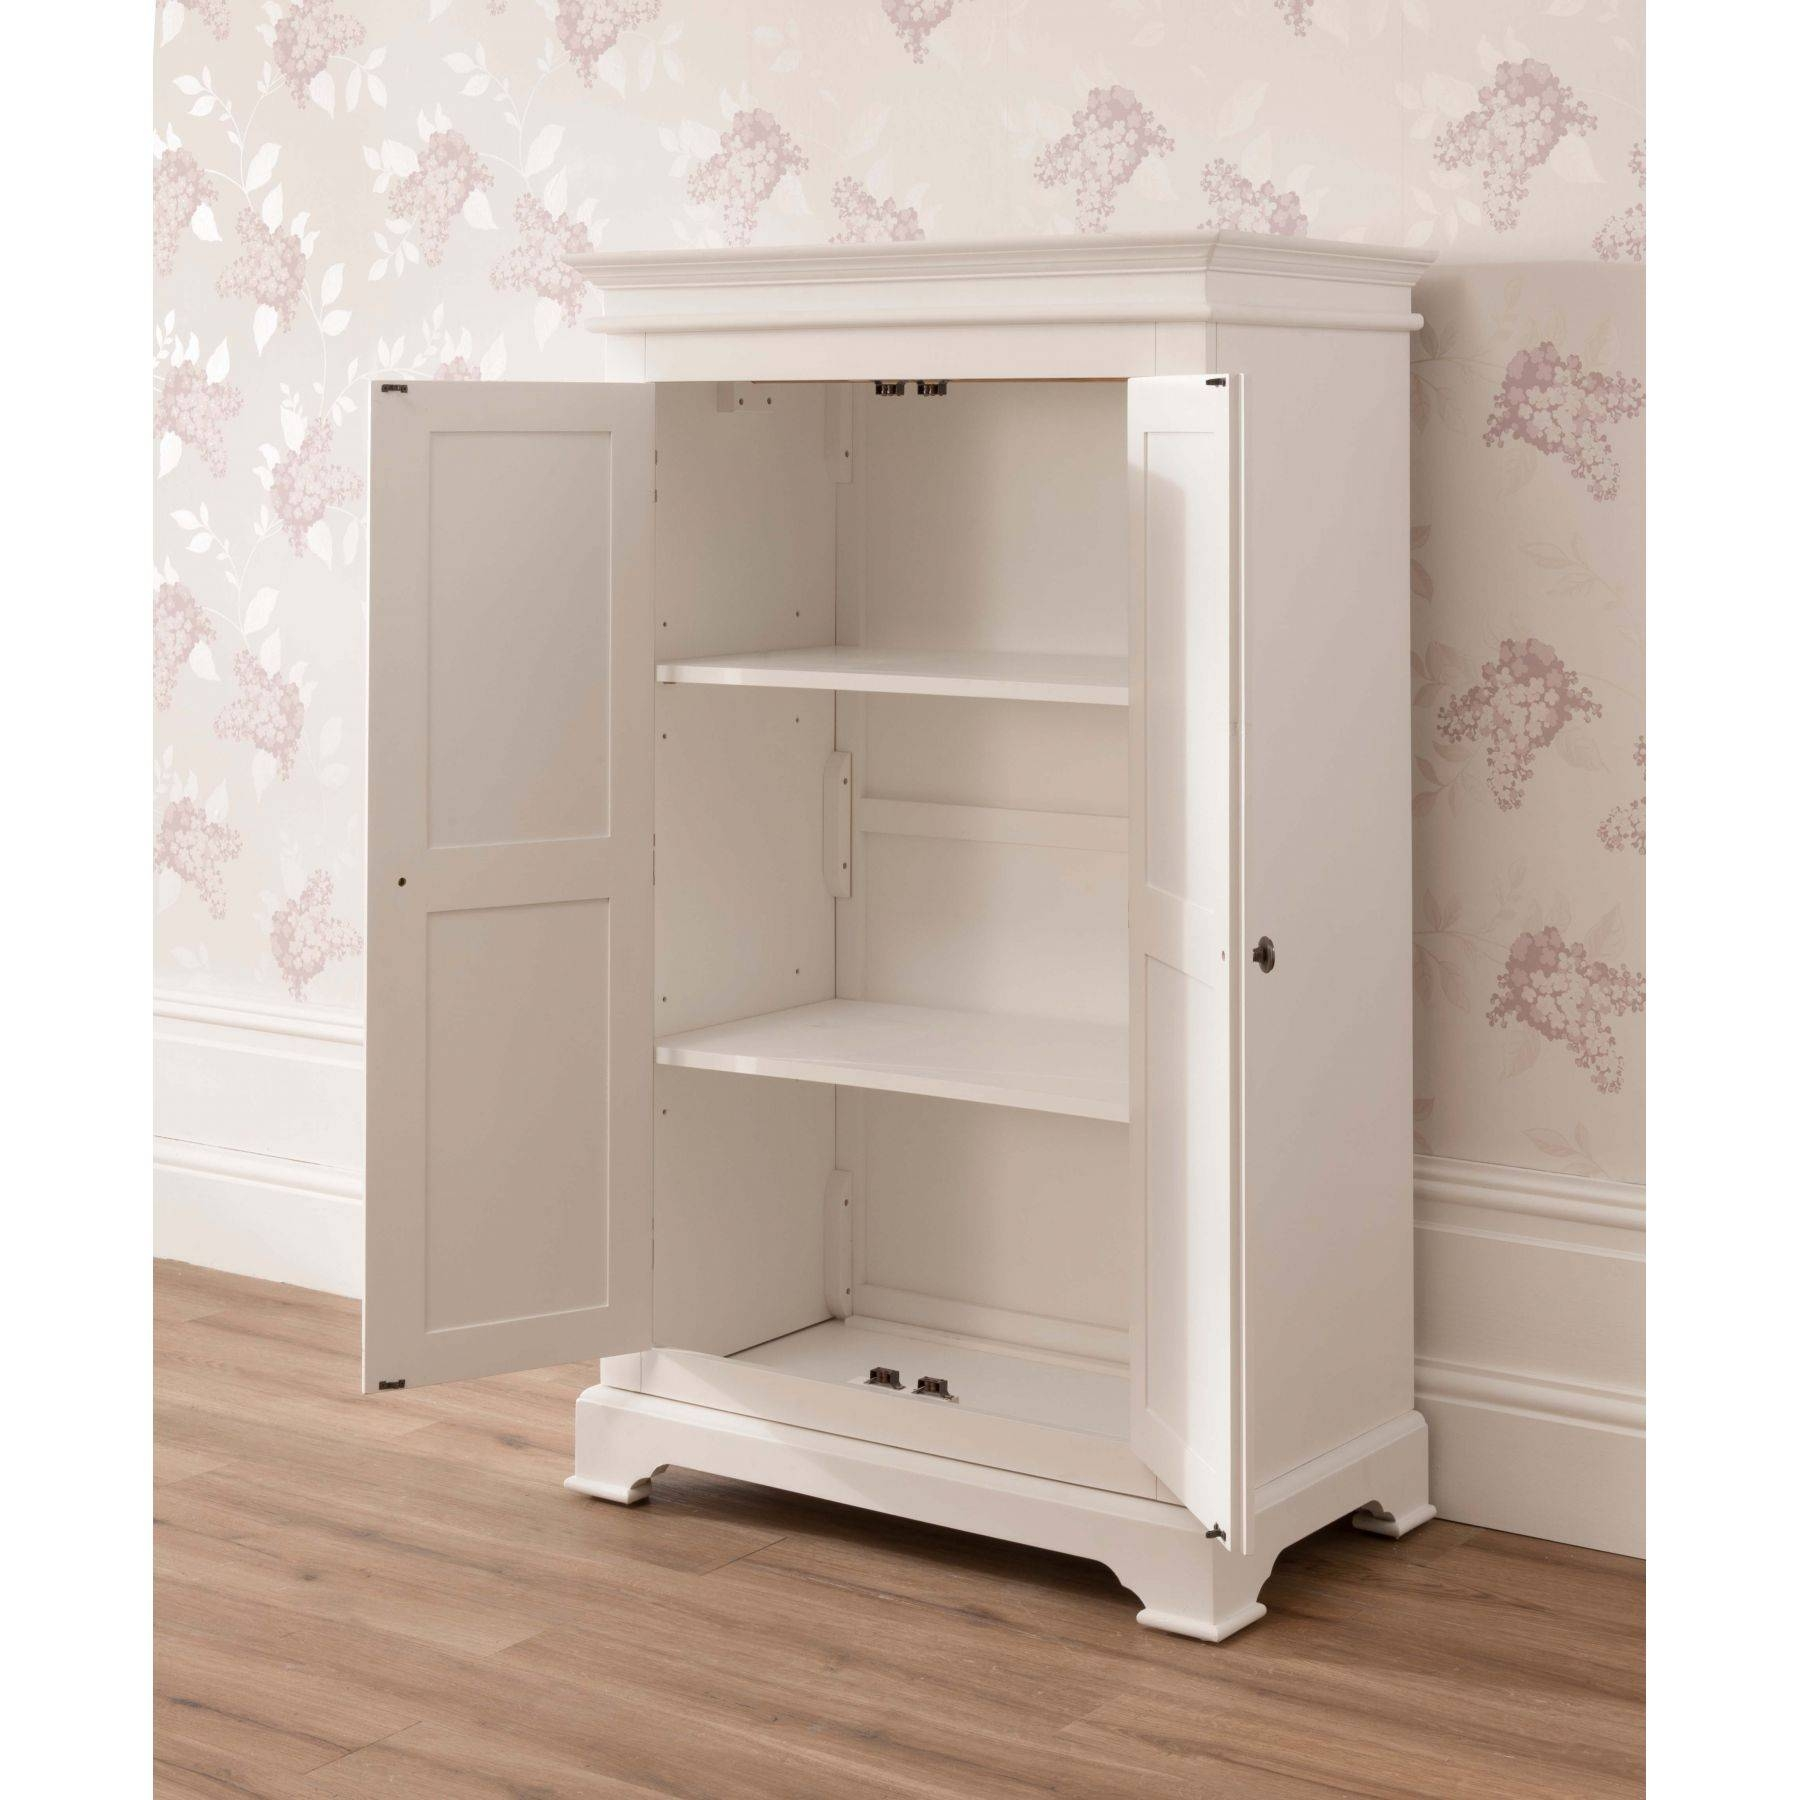 Sophia Kids Shabby Chic Wardrobe Works Wonderful Alongside Our with regard to Shabby Chic Wardrobes (Image 13 of 15)